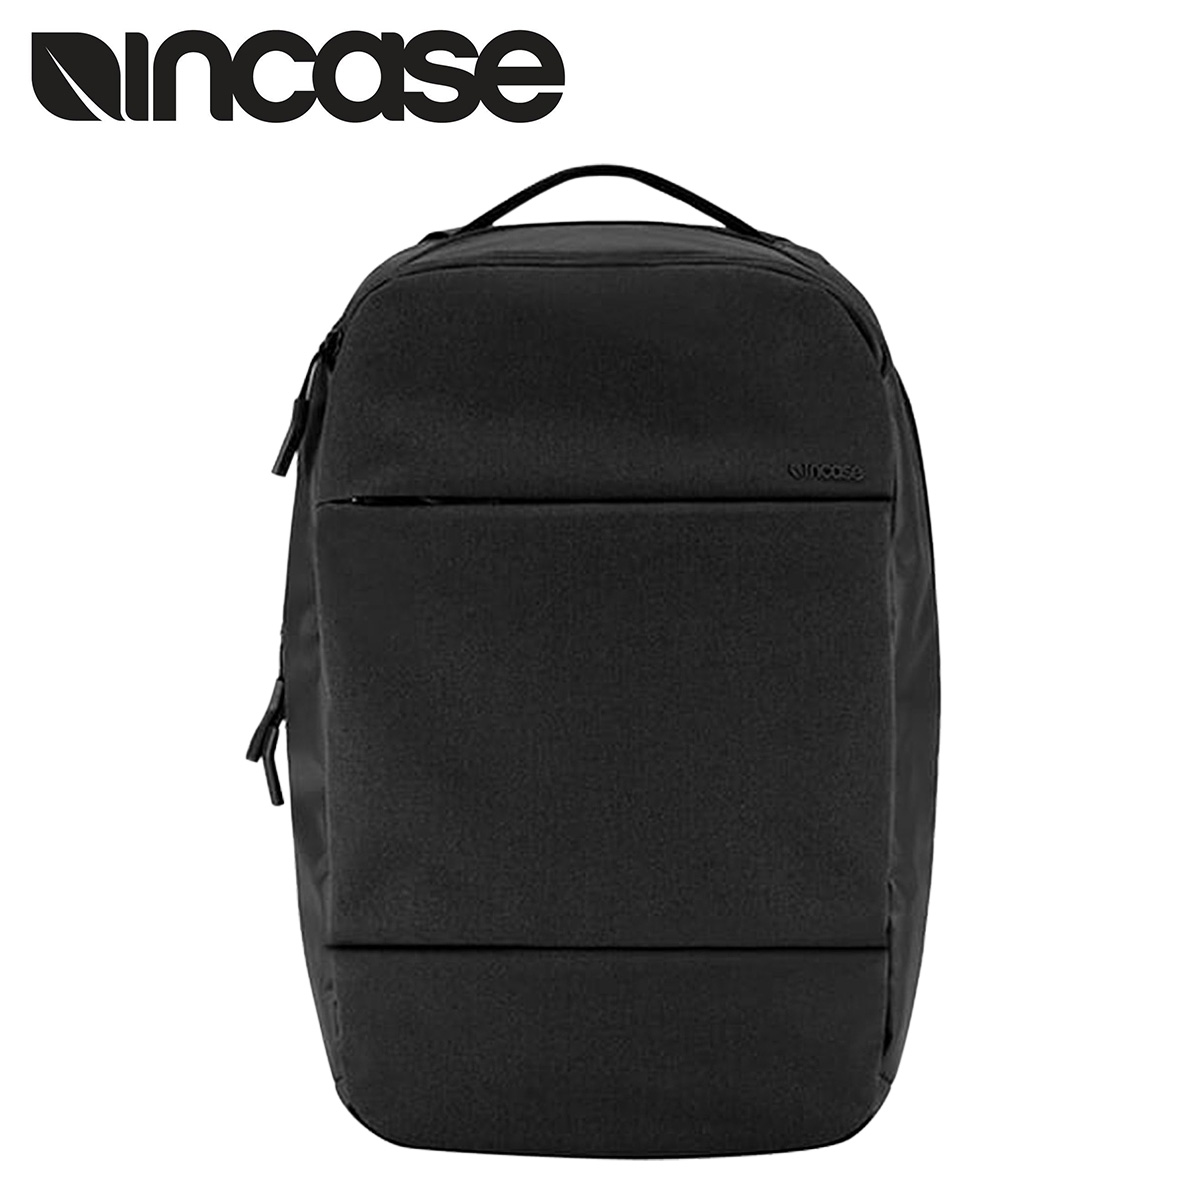 Incase chrome slider INCASE Backpack Backpack mens 2015 stock CL55452 black  CITY COLLECTION COMPACT BACKPACK [2/18 new in stock] [regular] ★ ★